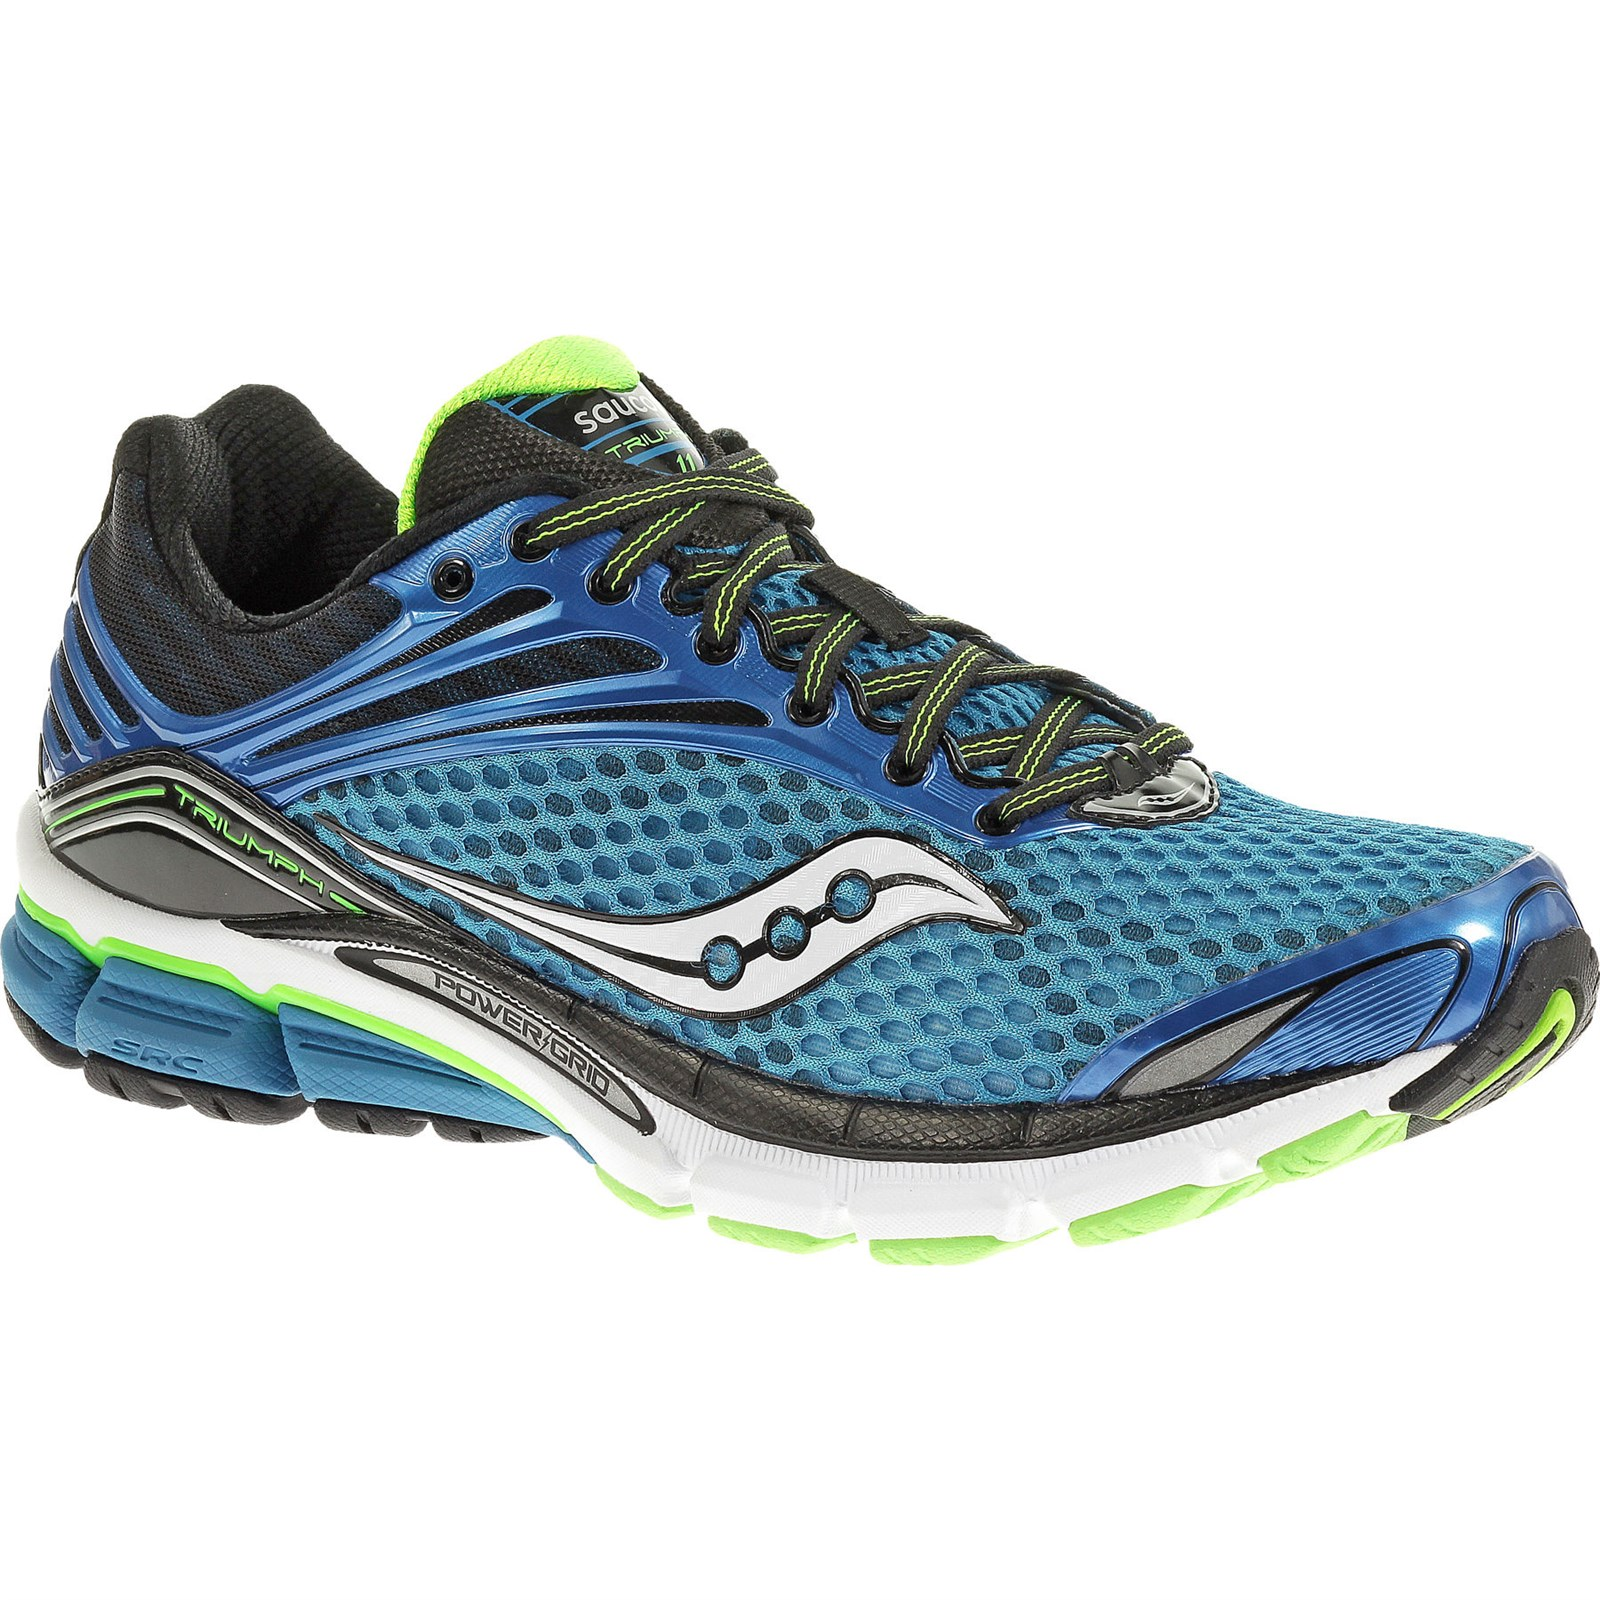 new saucony powergrid triumph 11 running shoes mens size